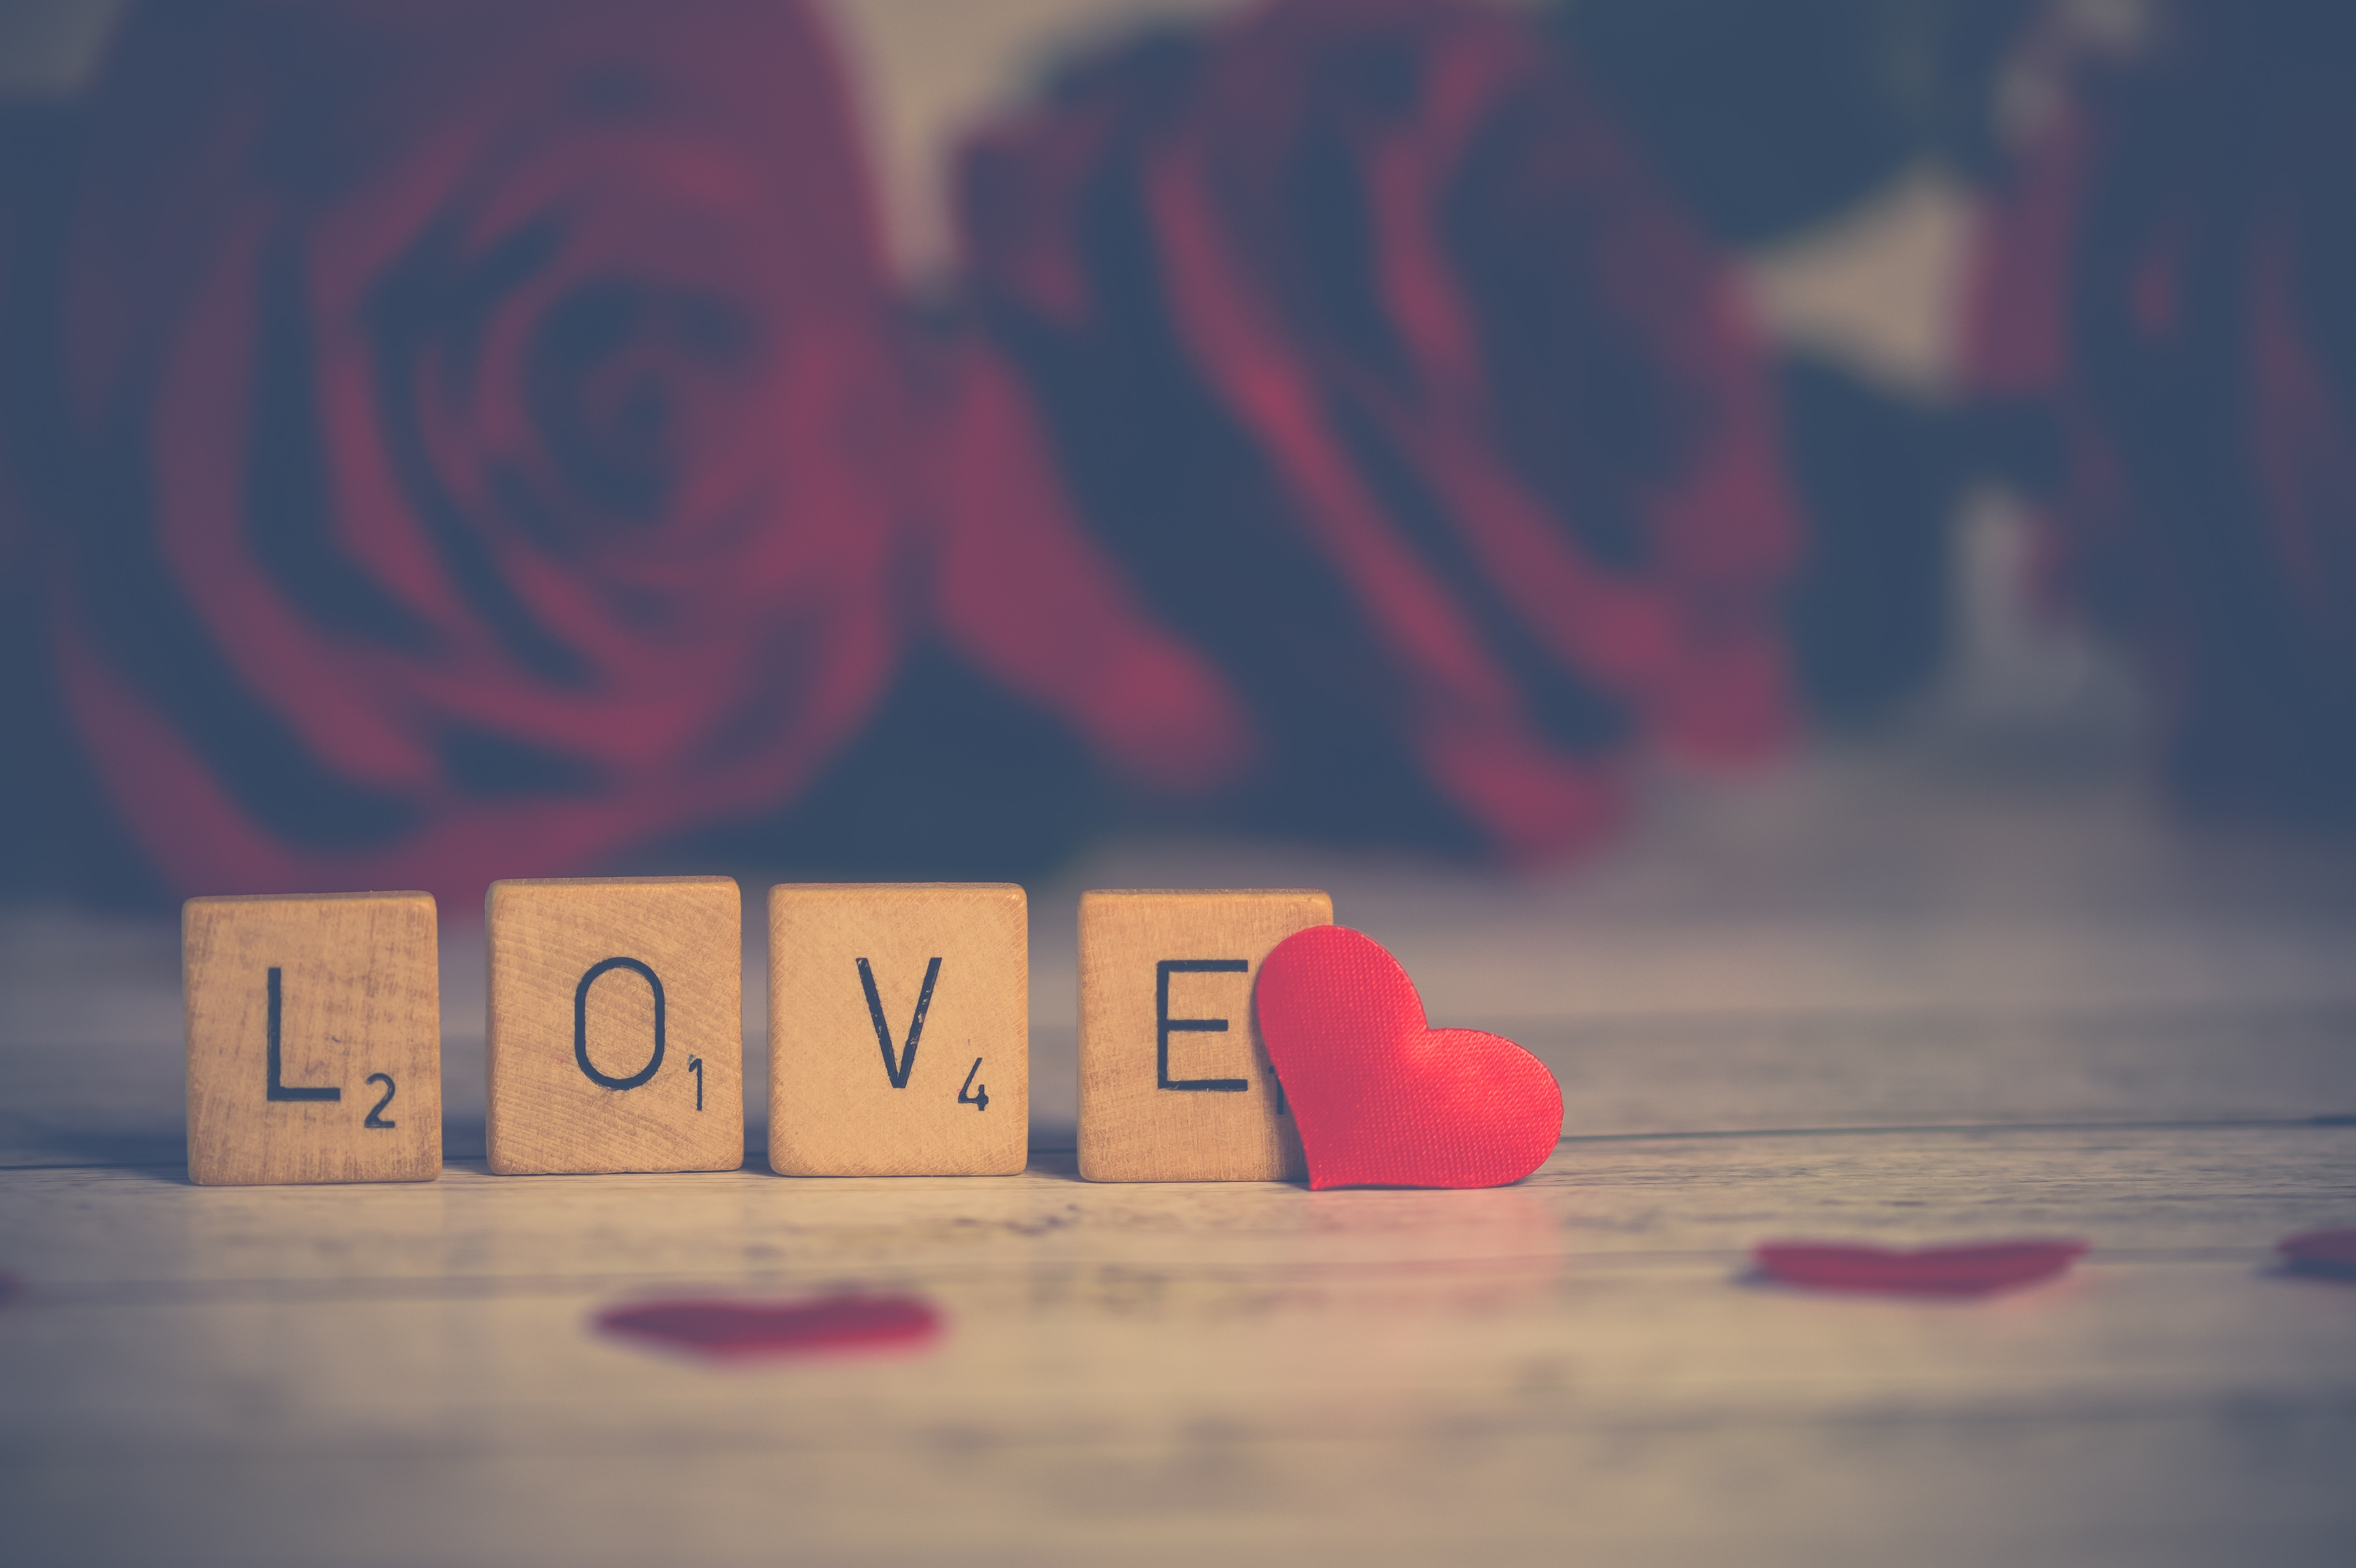 Close-up Photo of Wooden Scrabble Tiles Near Heart, Red roses, Wood, Text, Symbol, HQ Photo